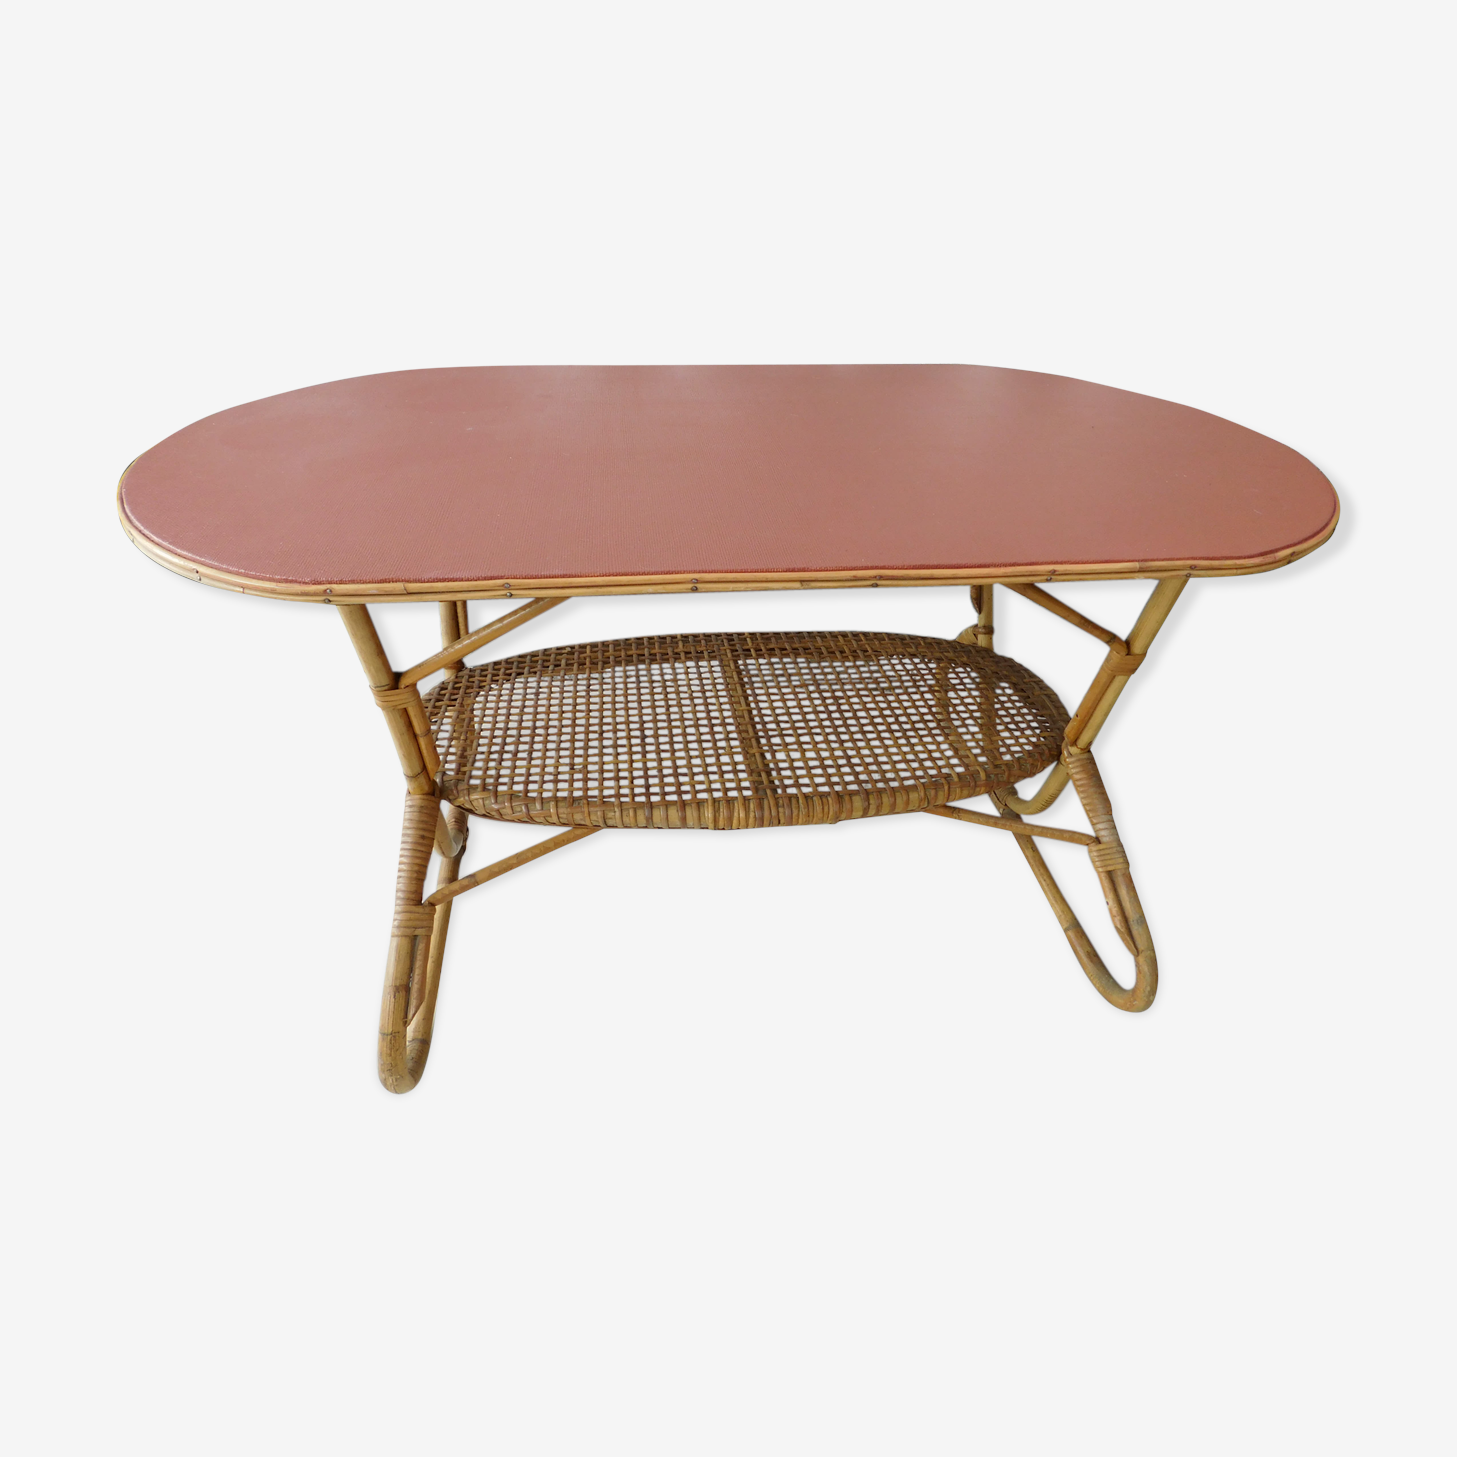 Table basse en rotin terracotta